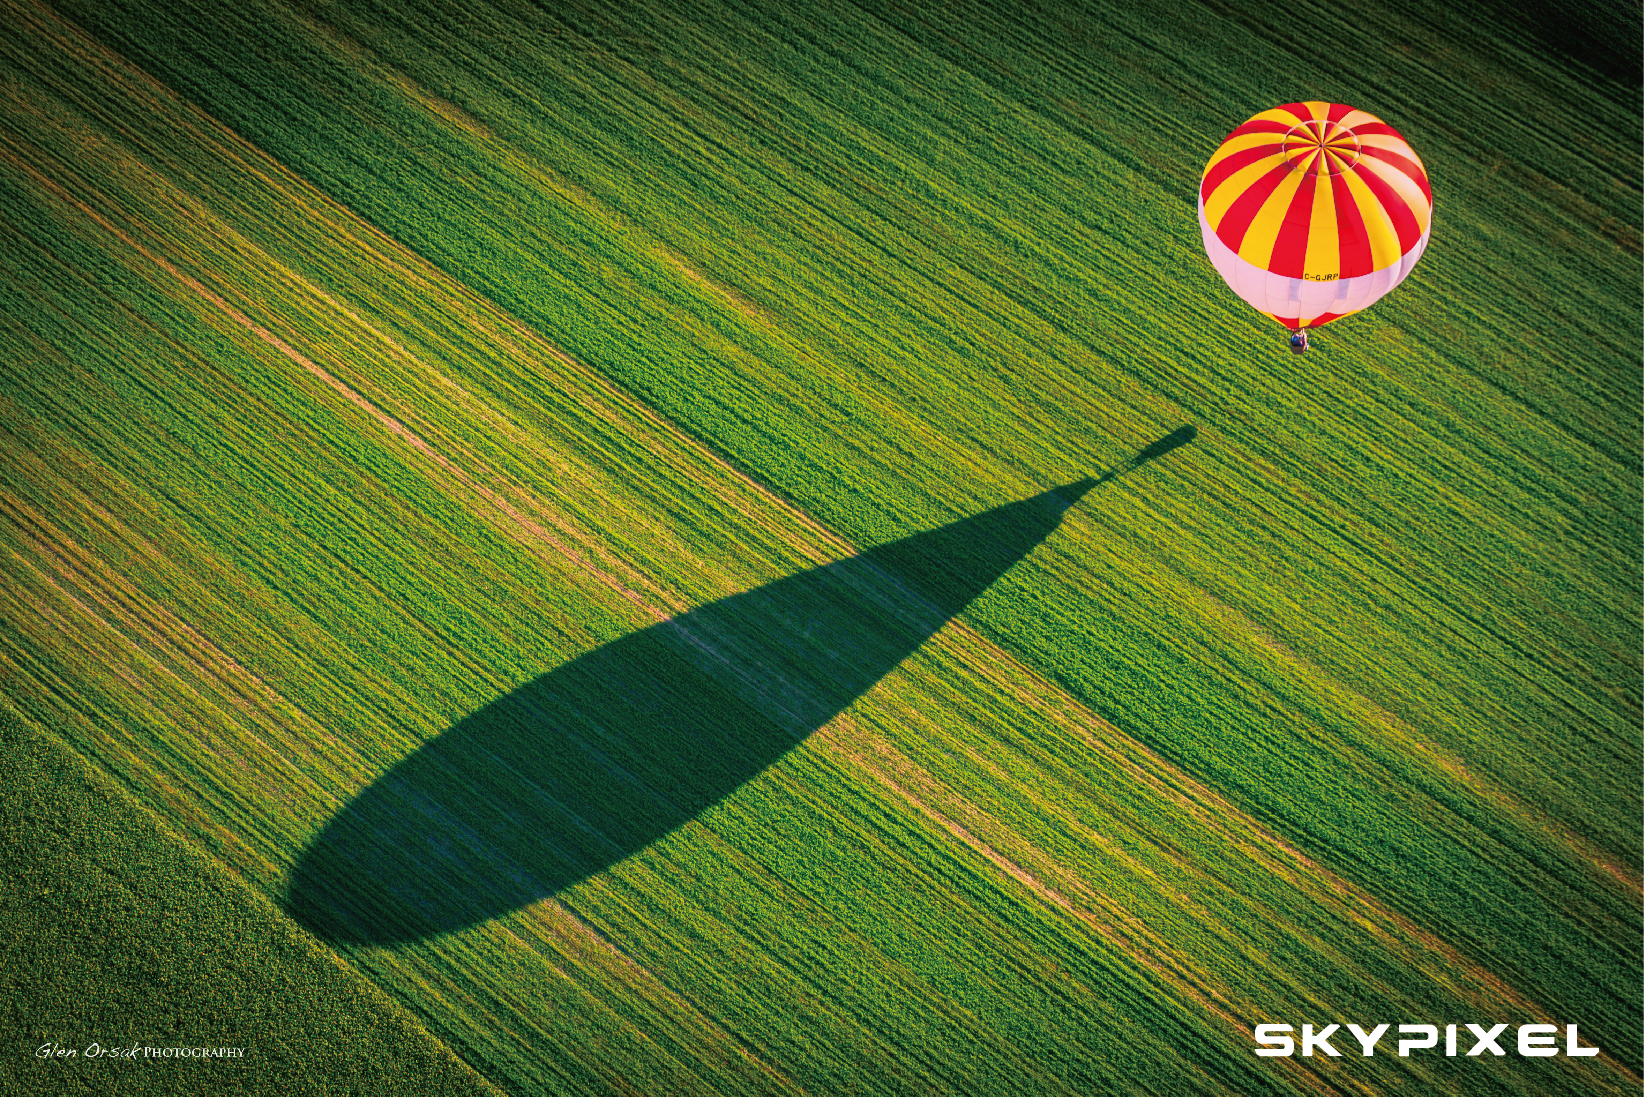 SkyPixel Chooses Best Aerial Imagery of 2015 - Unmanned ...